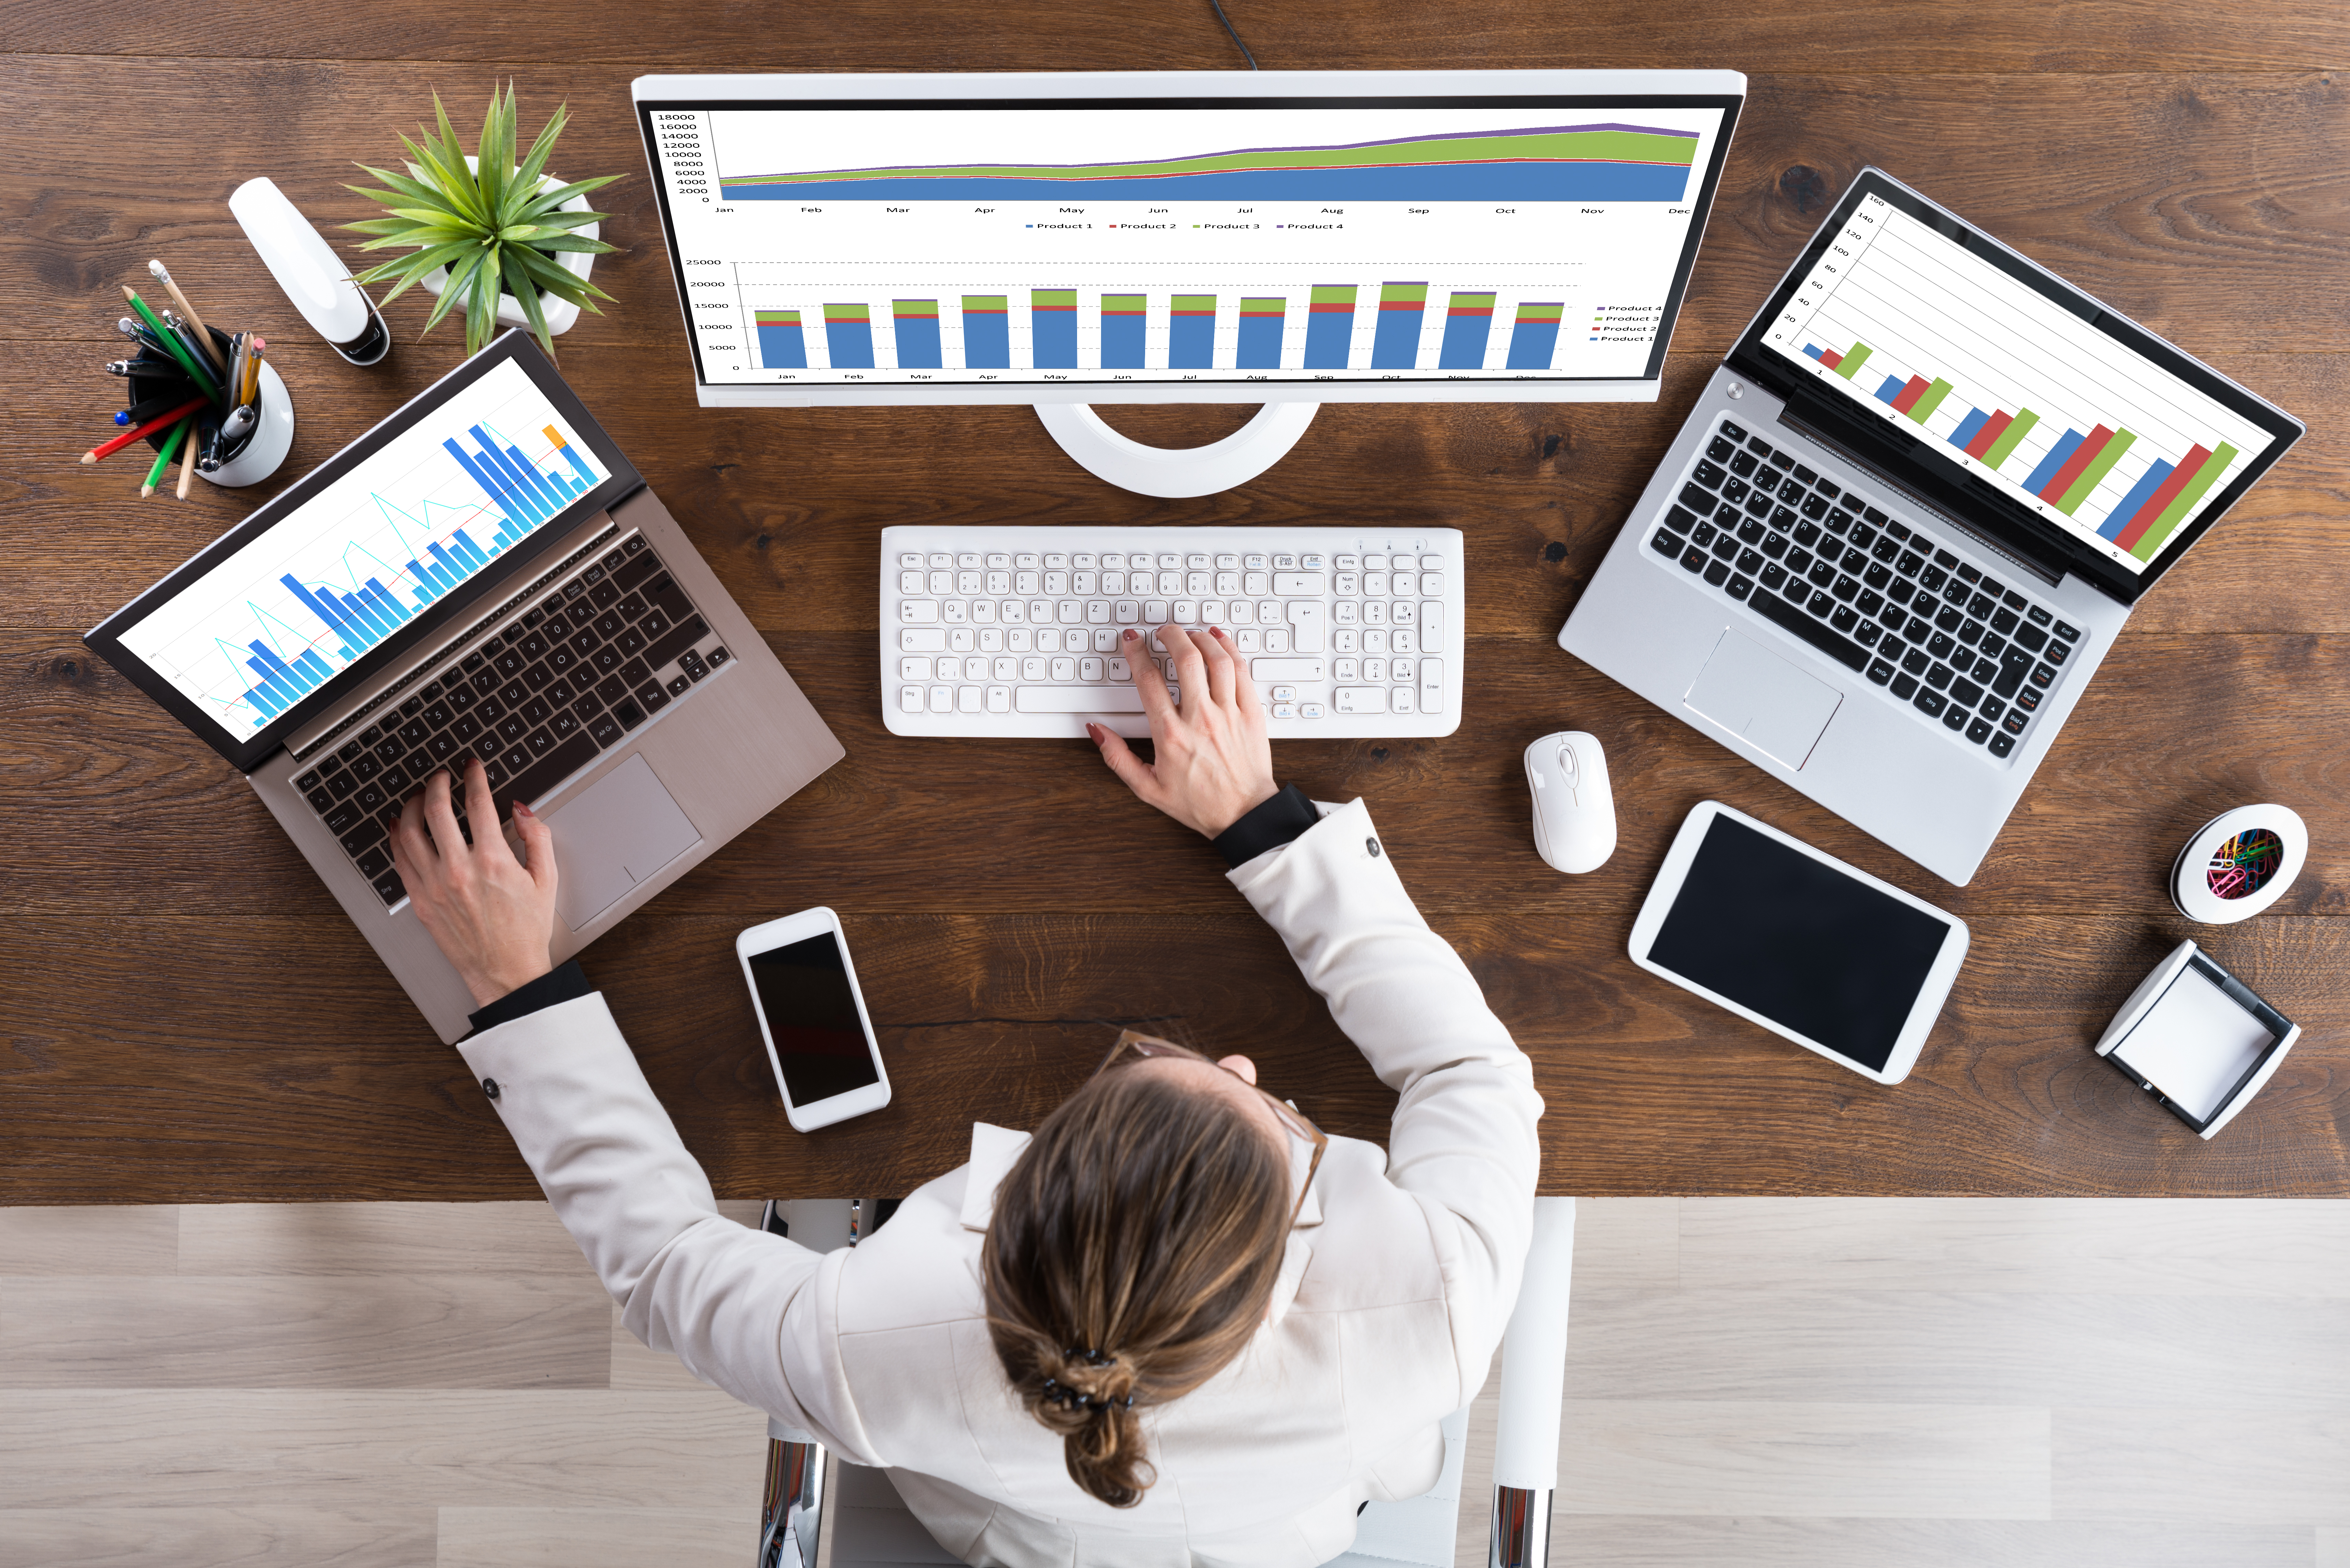 High Angle View Of Young Businesswoman Working With Graphs On Computer